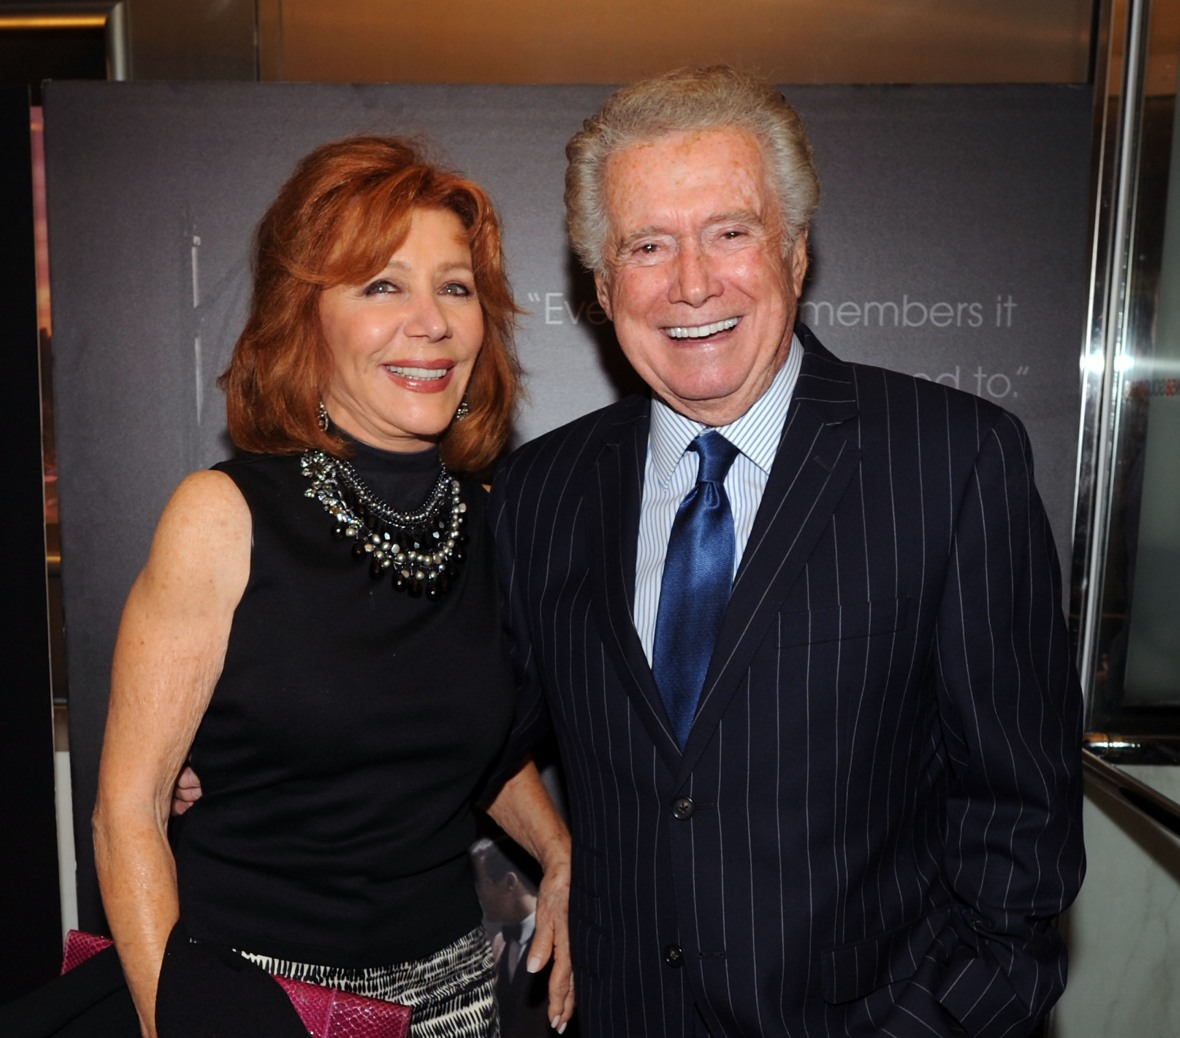 regis philbin joy philbin getty images